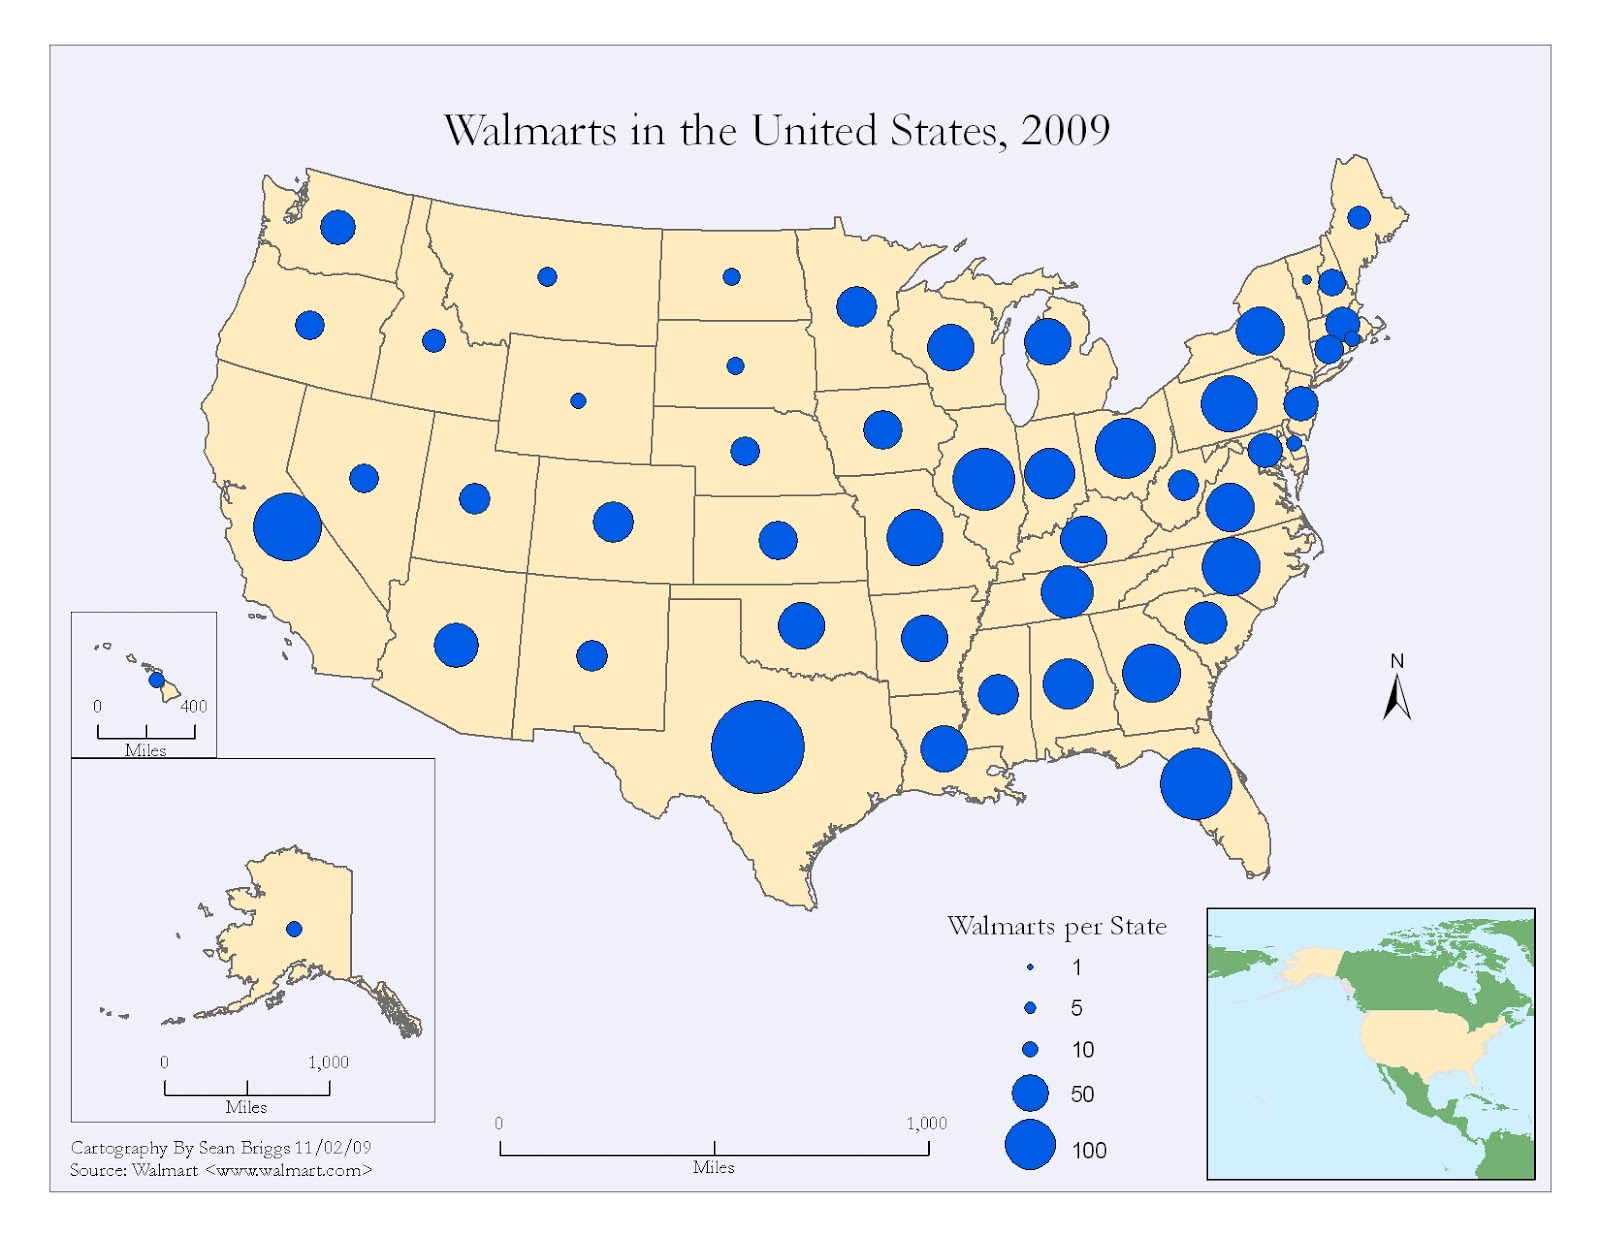 kroger locations map html with 2012 09 01 Archive on Id AHR0cDovL3d3dy5maW5kdGhhdGxvZ28uY29tL3dwLWNvbnRlbnQvZ2FsbGVyeS9ncm9jZXJ5LWNvbXBhbnktbG9nb3MvdGh1bWJzL3RodW1ic19naWFudC1lYWdsZS1sb2dvLmdpZg likewise Neiman Marcus 25000 Dollar Cookie Recipe further Former Albertsons 4429 Melbourne Fl also work strategy moreover Costco Us Locations Map.